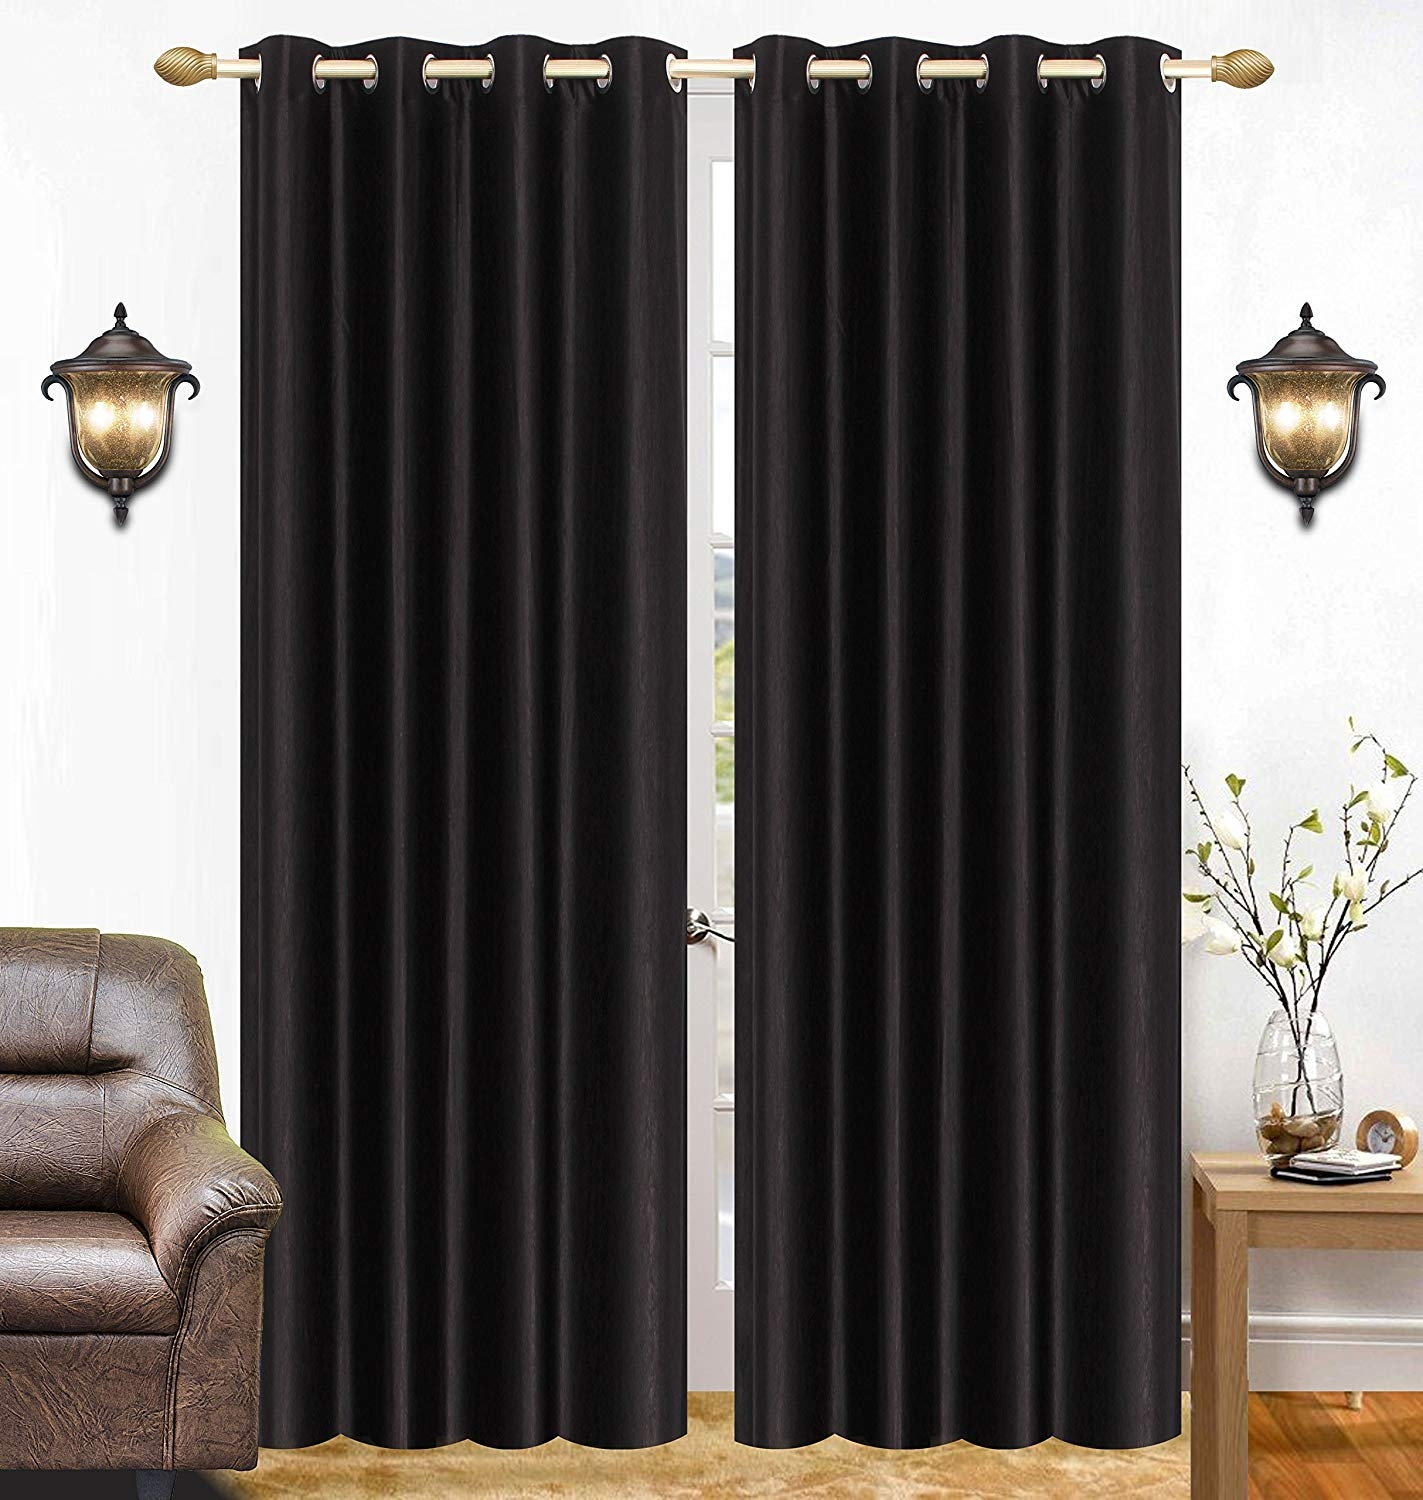 Homelogy Single Piece Crush Curtain Black